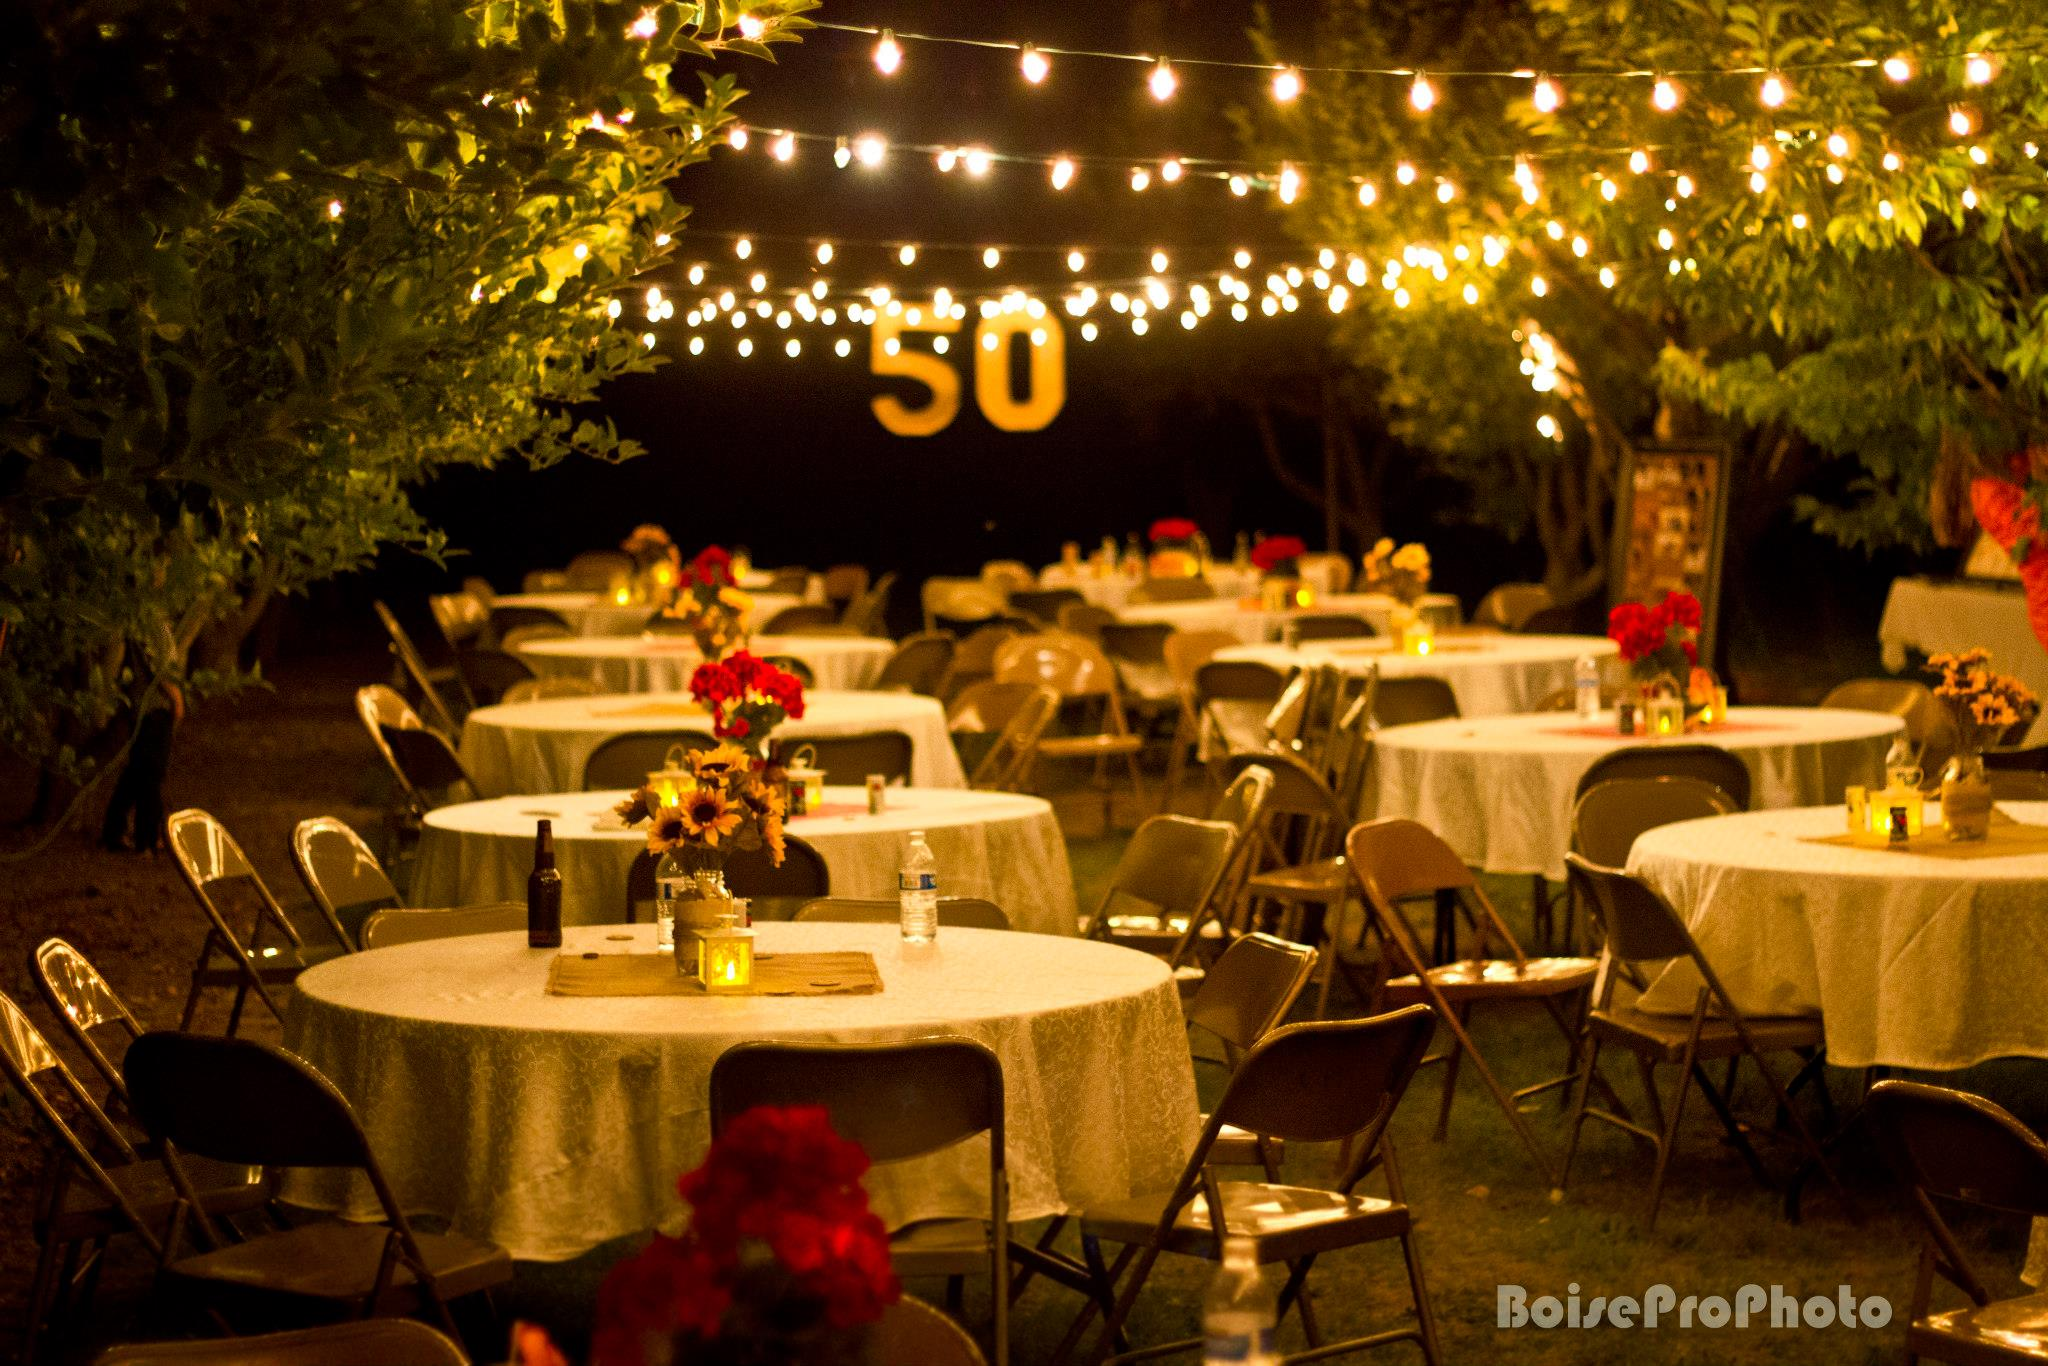 50th Wedding Anniversary Decoration Ideas | Romantic ...